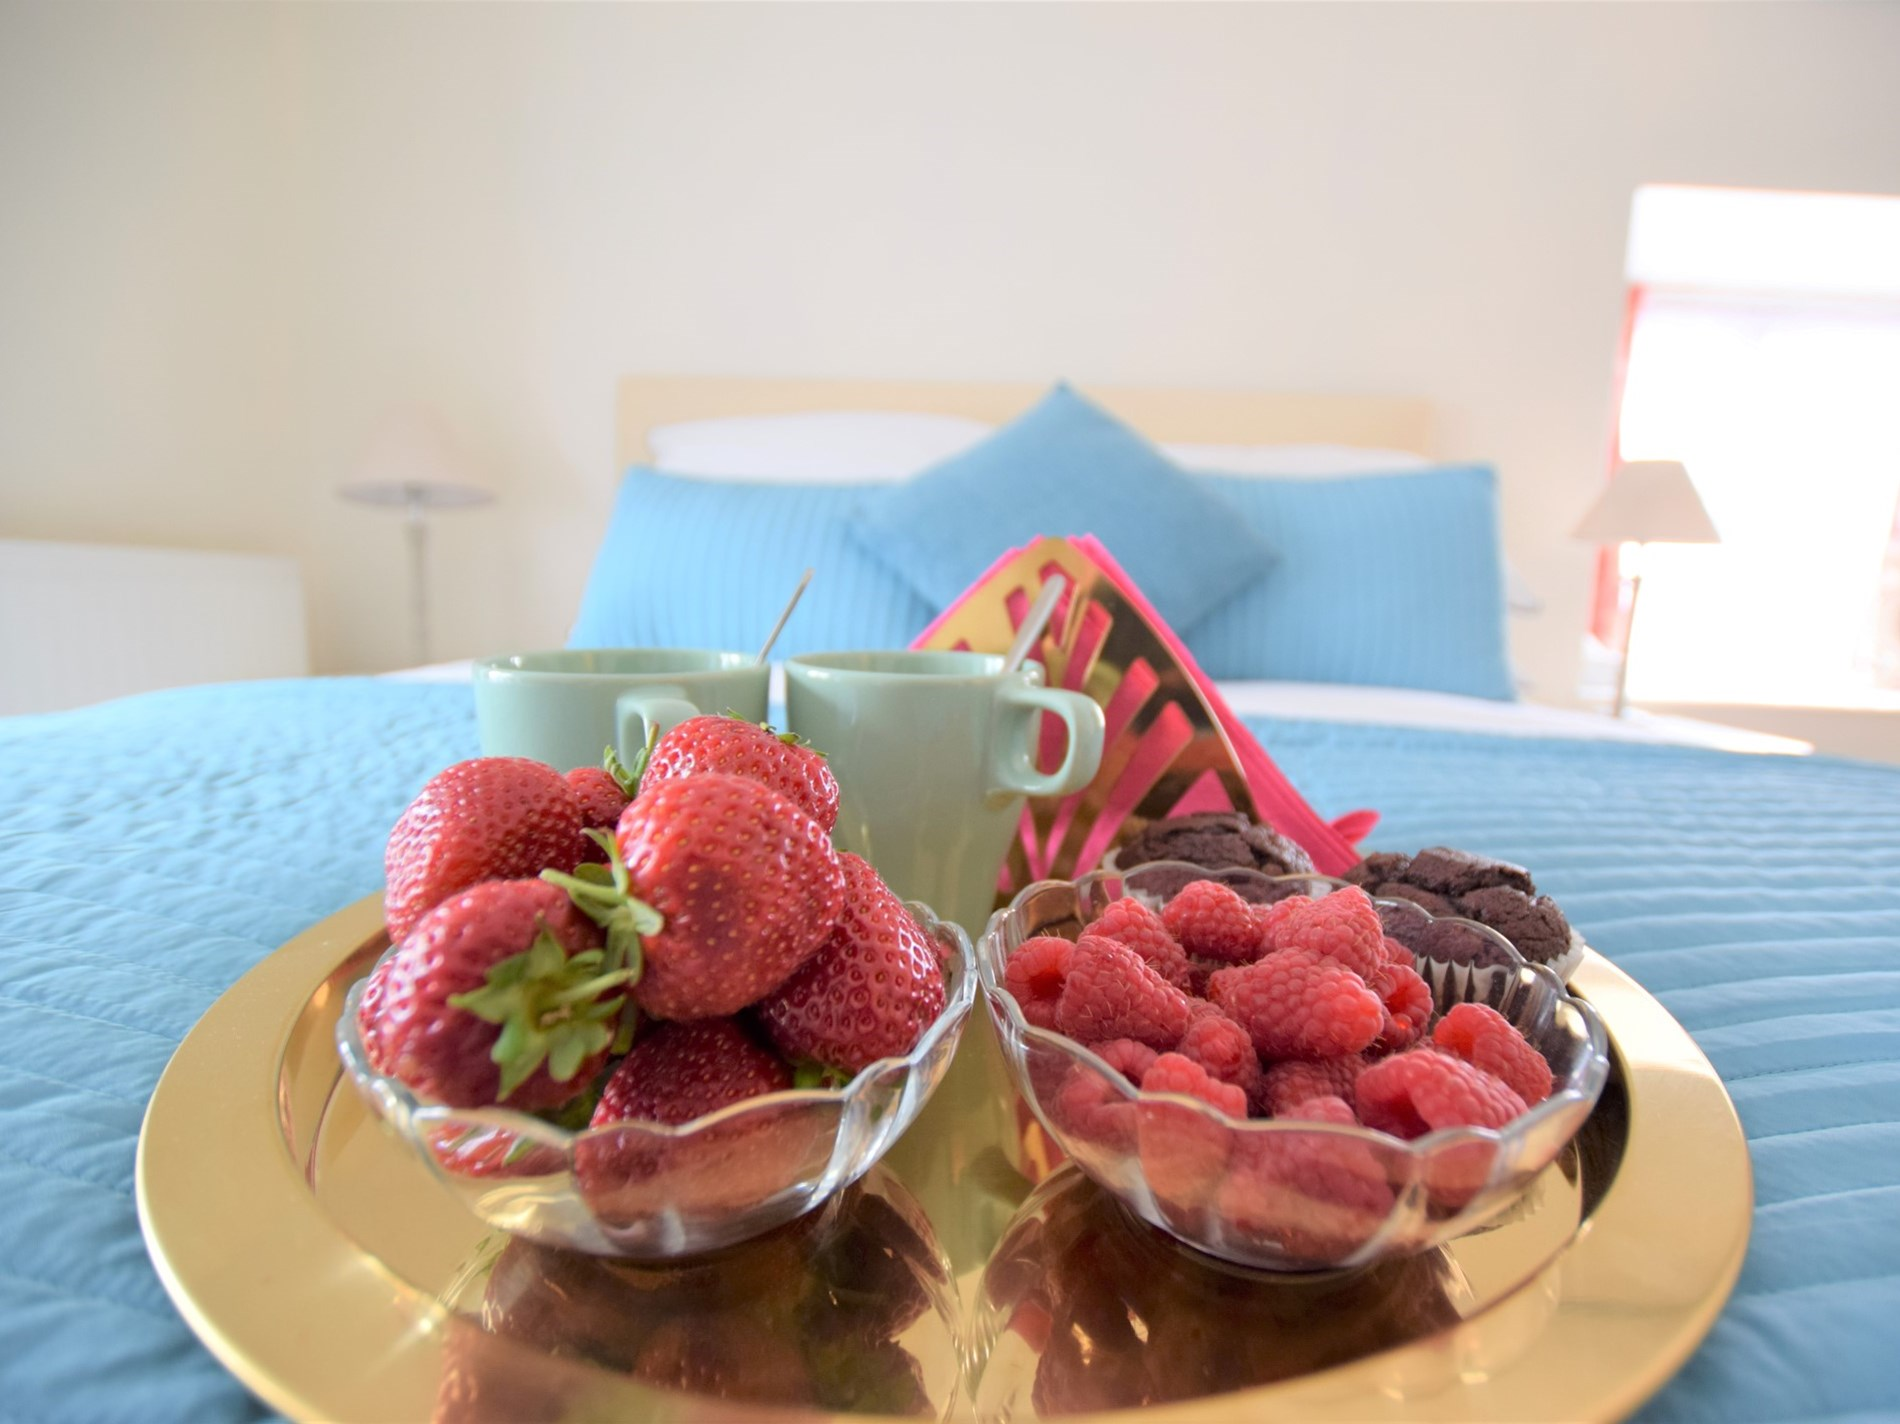 Relax with breakfast in bed